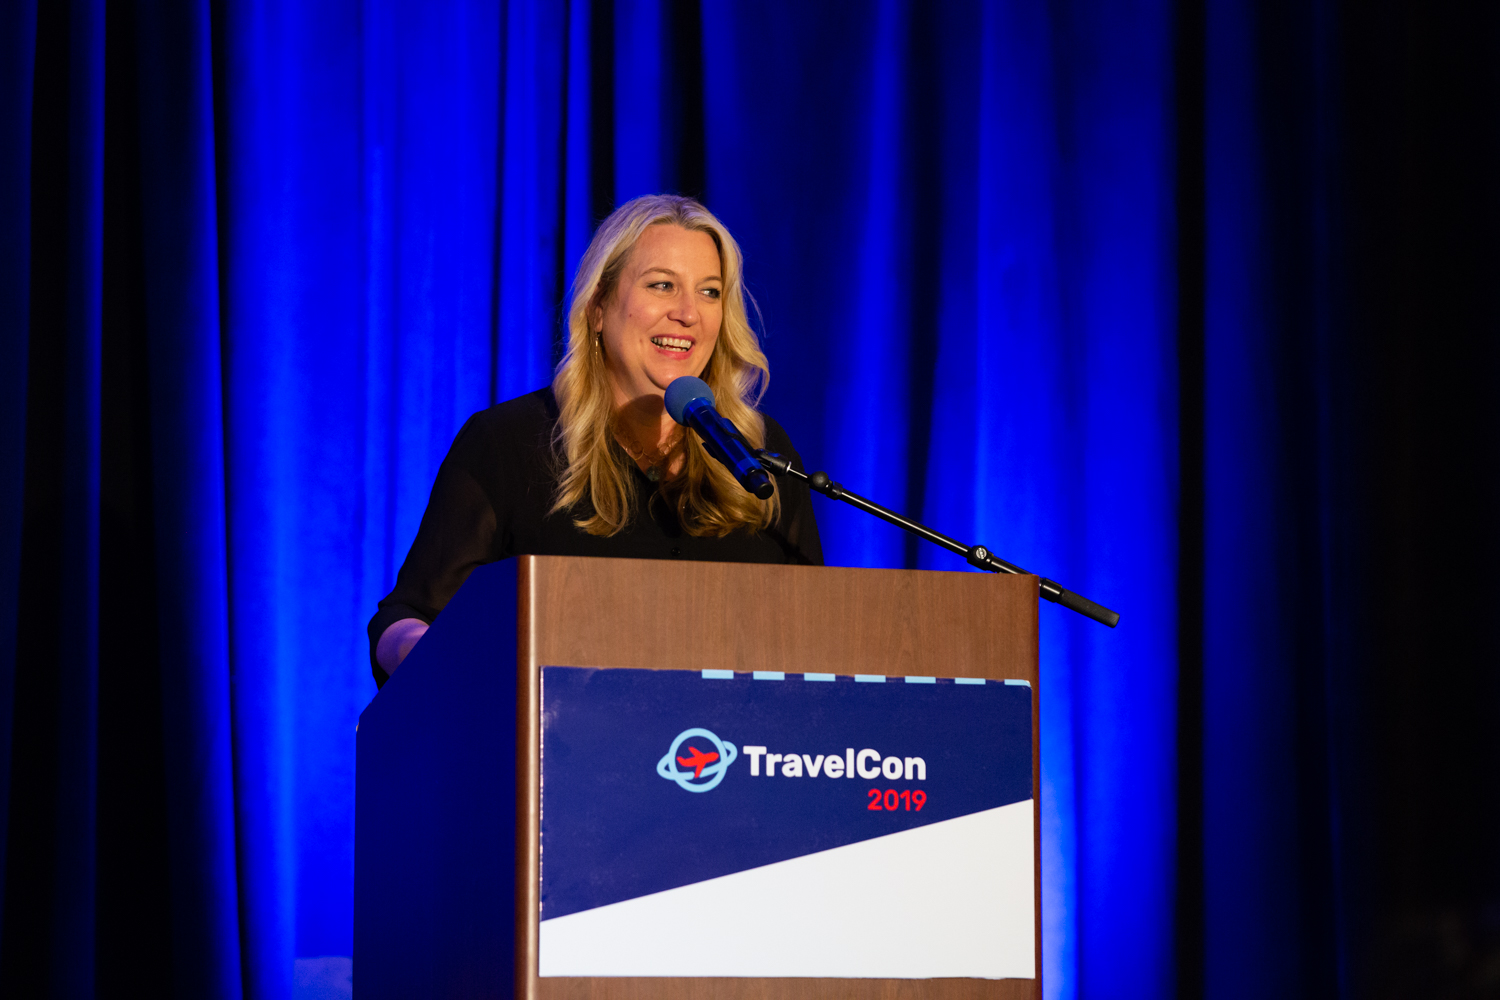 travelcon-2019-ash-forrest--5121